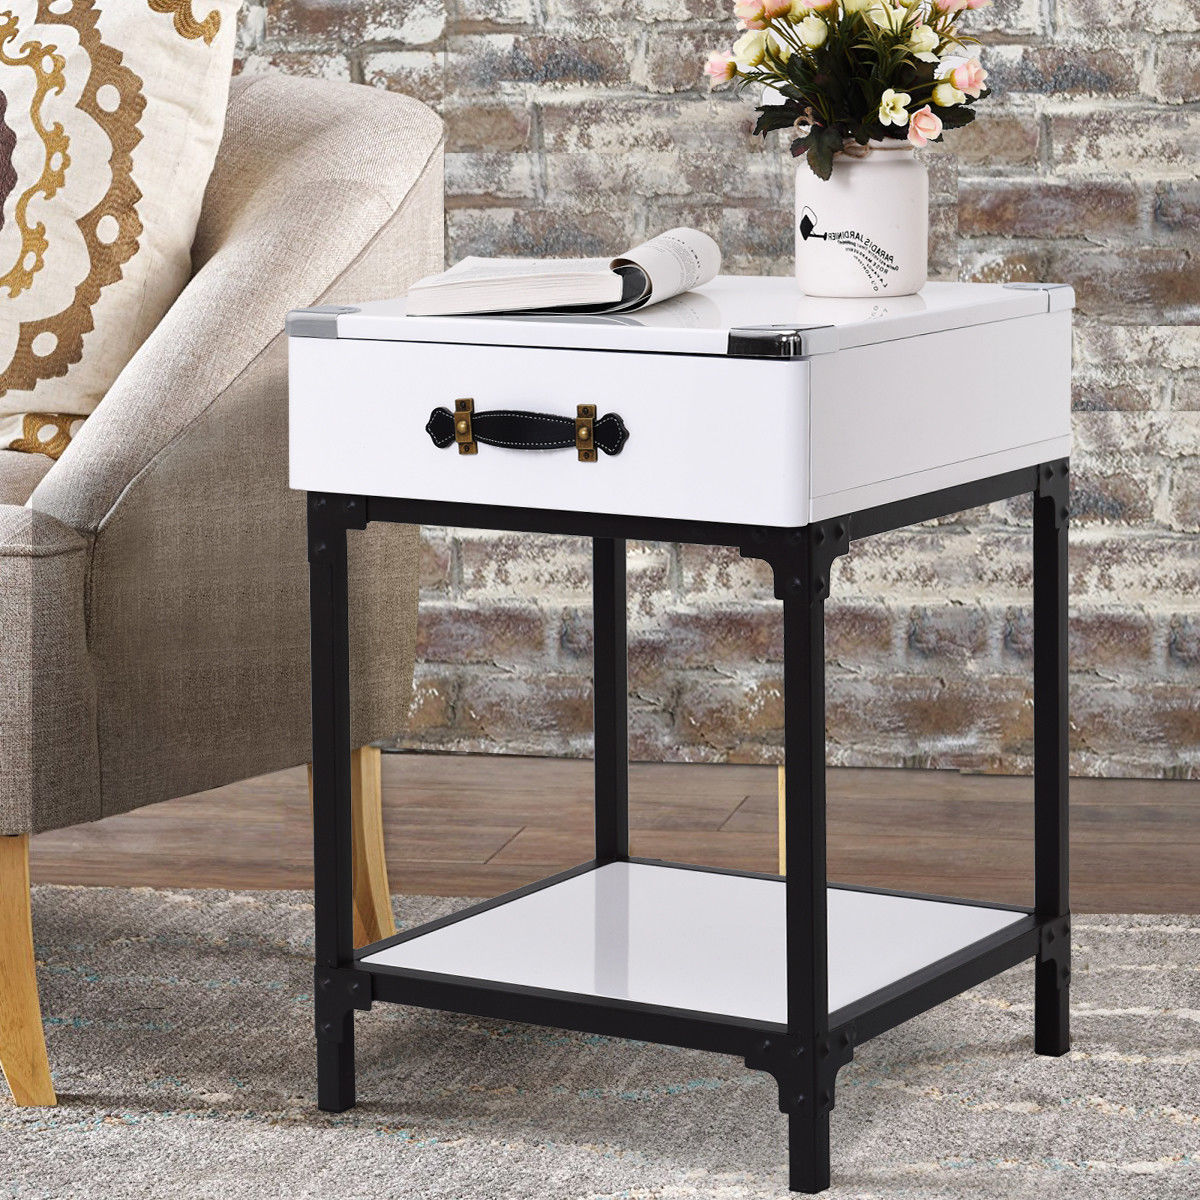 Gymax modern coffee end table accent sofa side table nightstand w drawershelf home